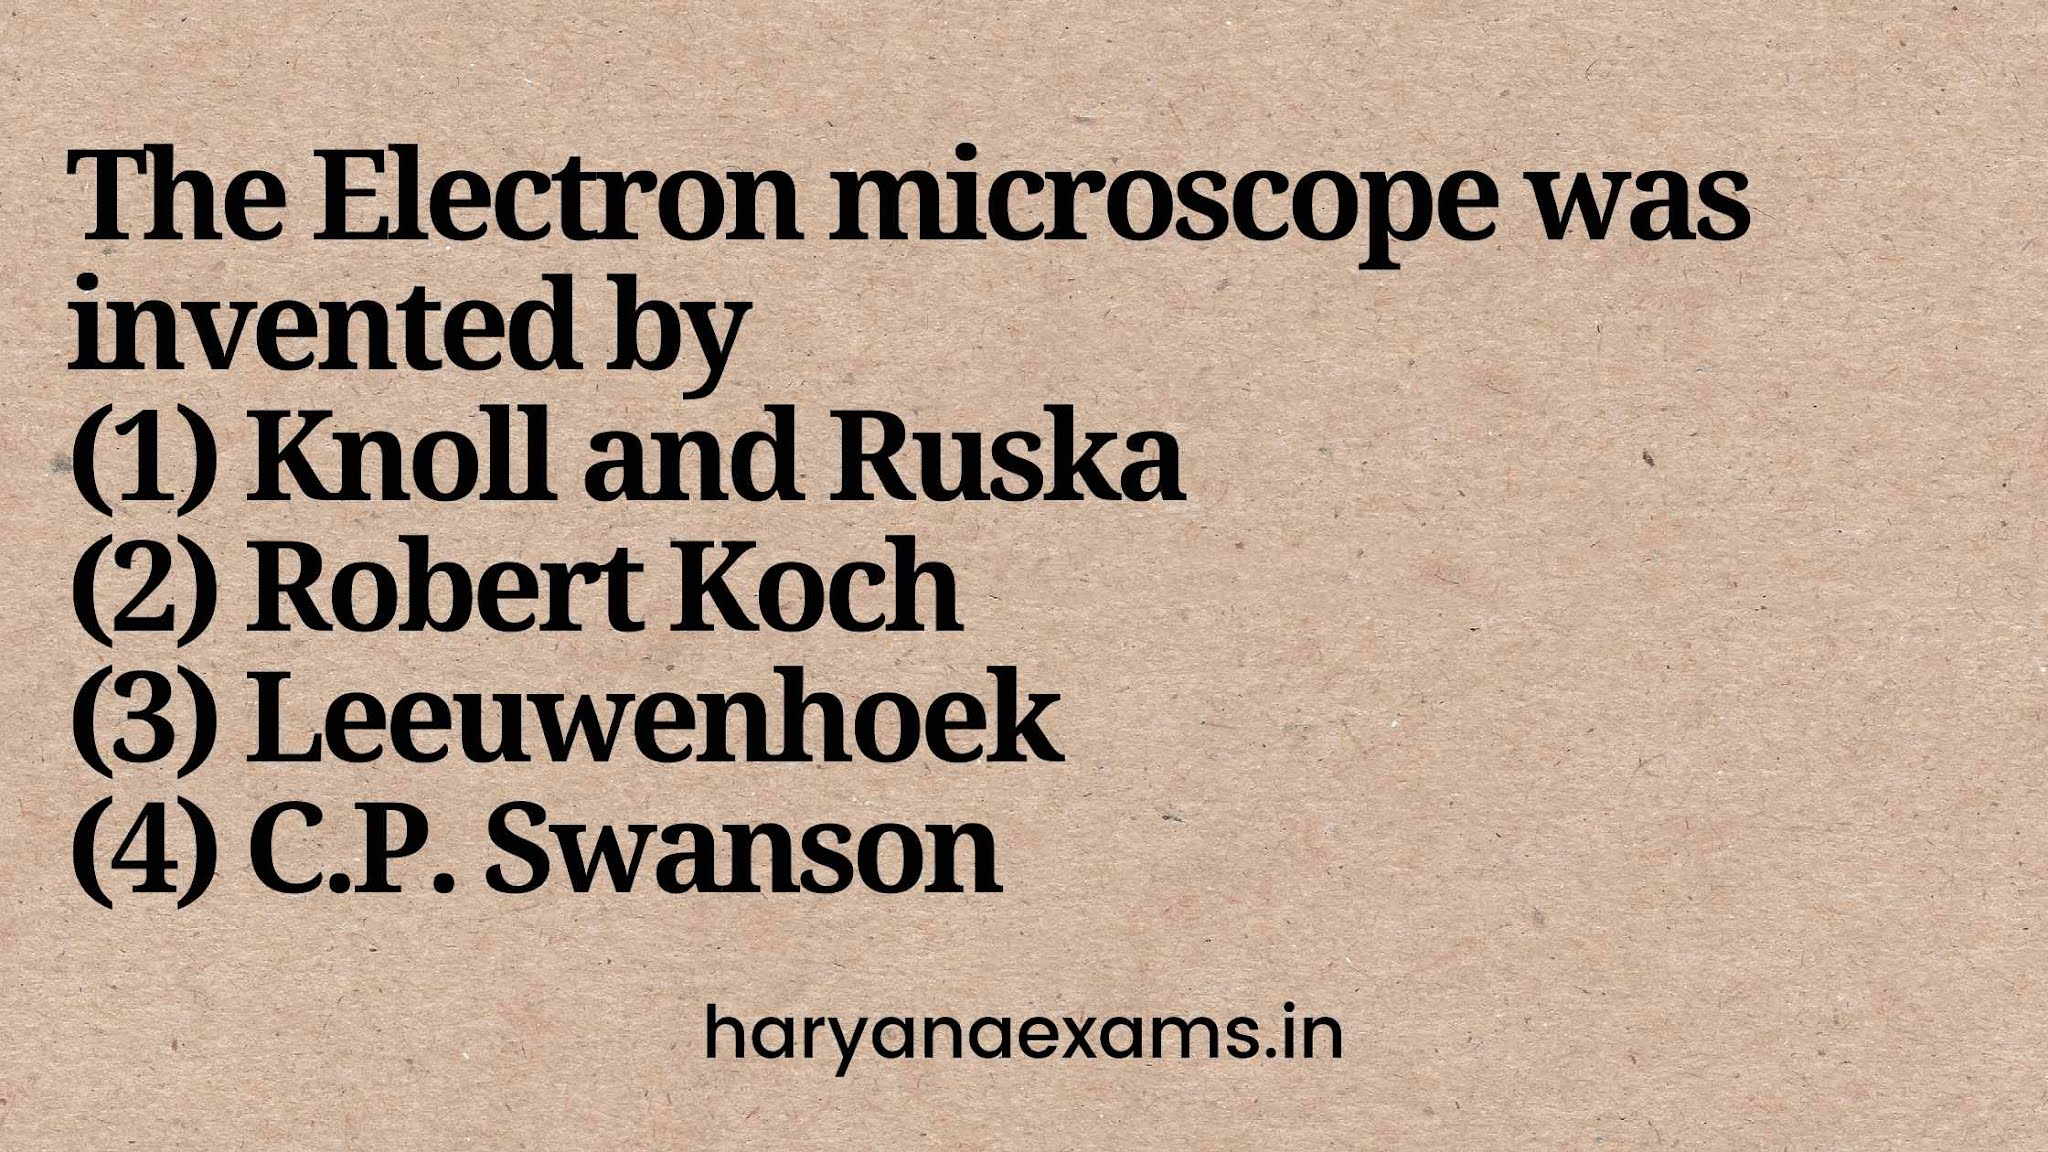 The Electron microscope was invented by   (1) Knoll and Ruska   (2) Robert Koch   (3) Leeuwenhoek   (4) C.P. Swanson